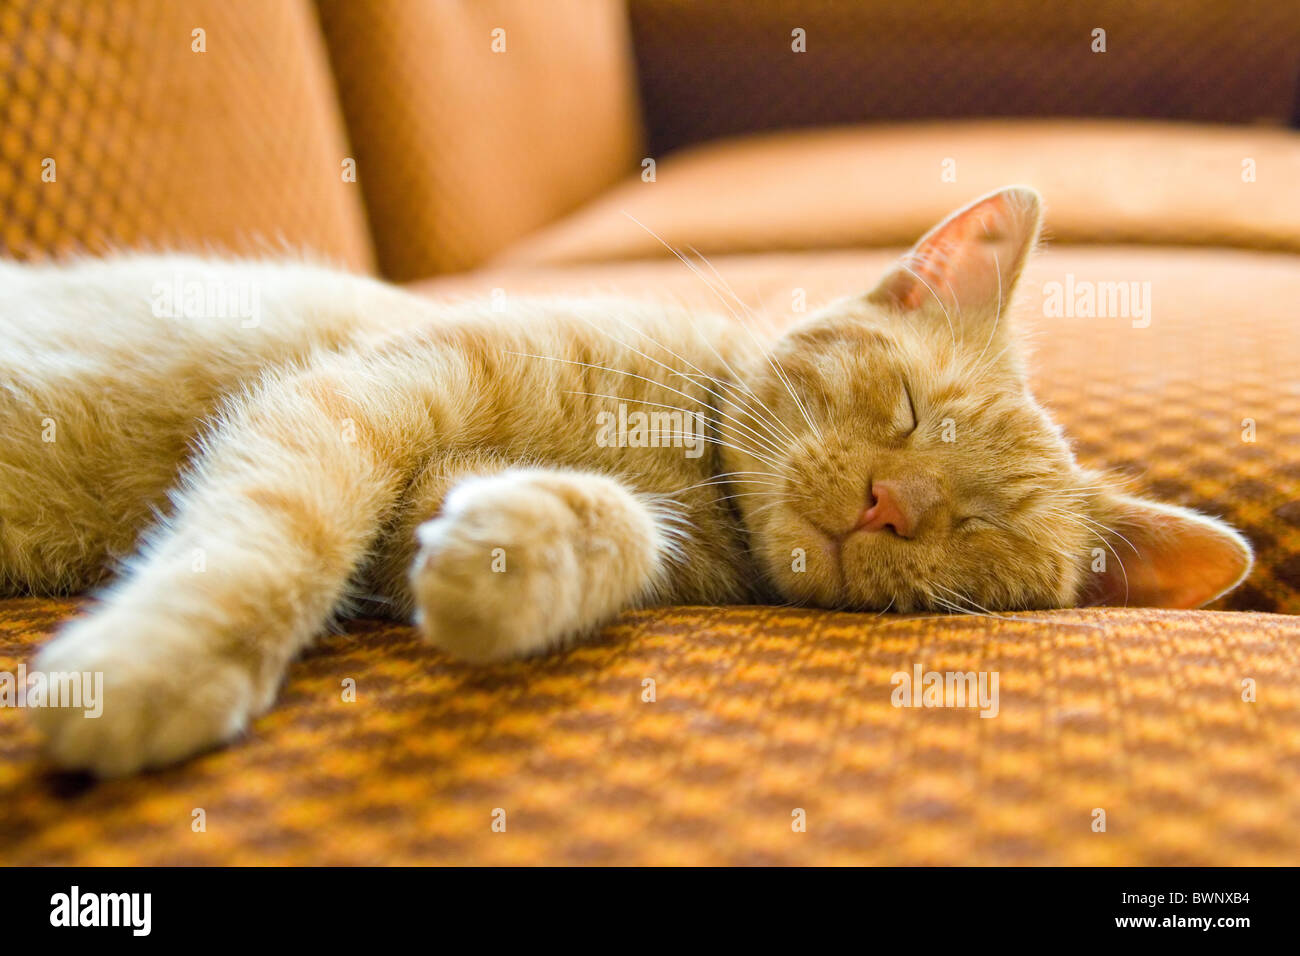 the ginger cat sleeping on couch - Stock Image